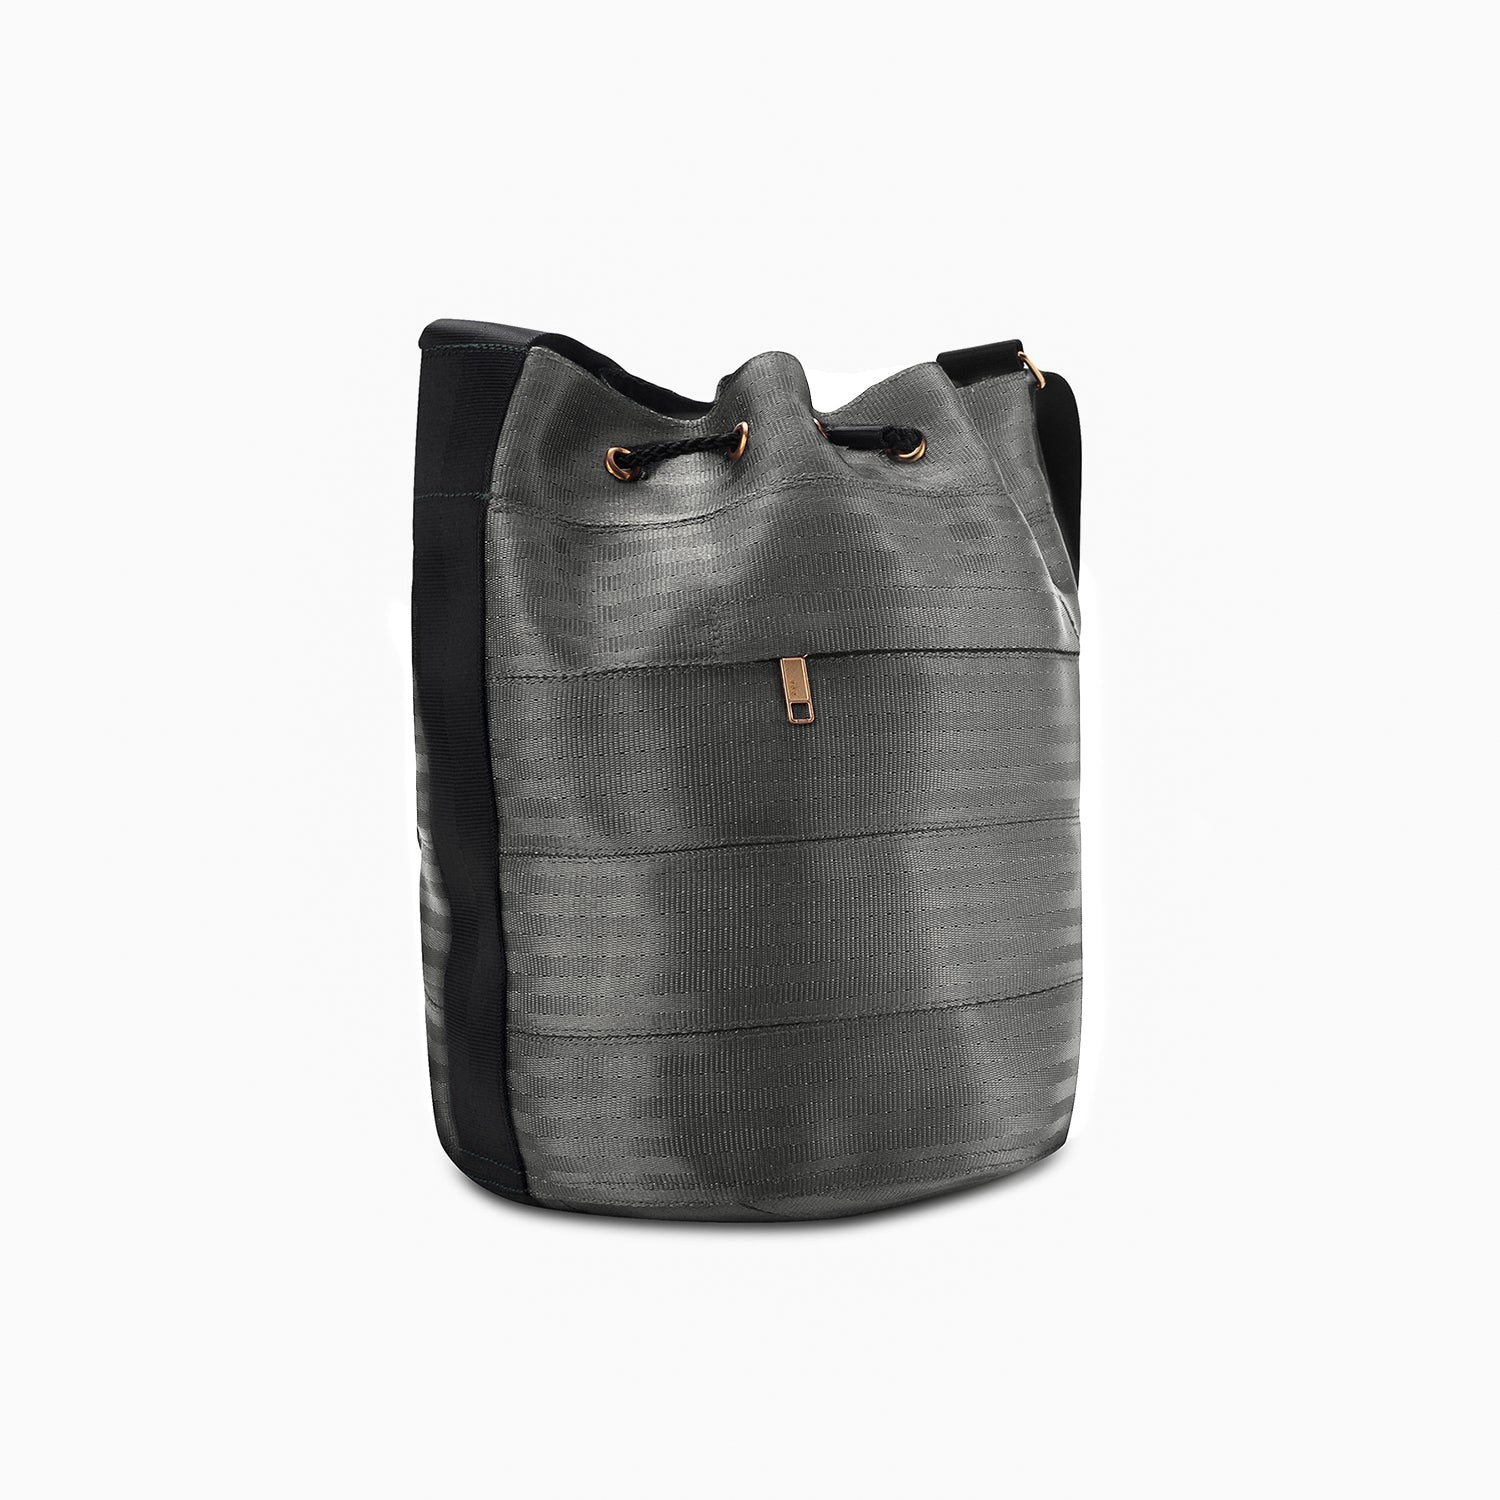 Balsam Upcycled Vegan Seatbelt Bucket Bag (3 Colours Available)